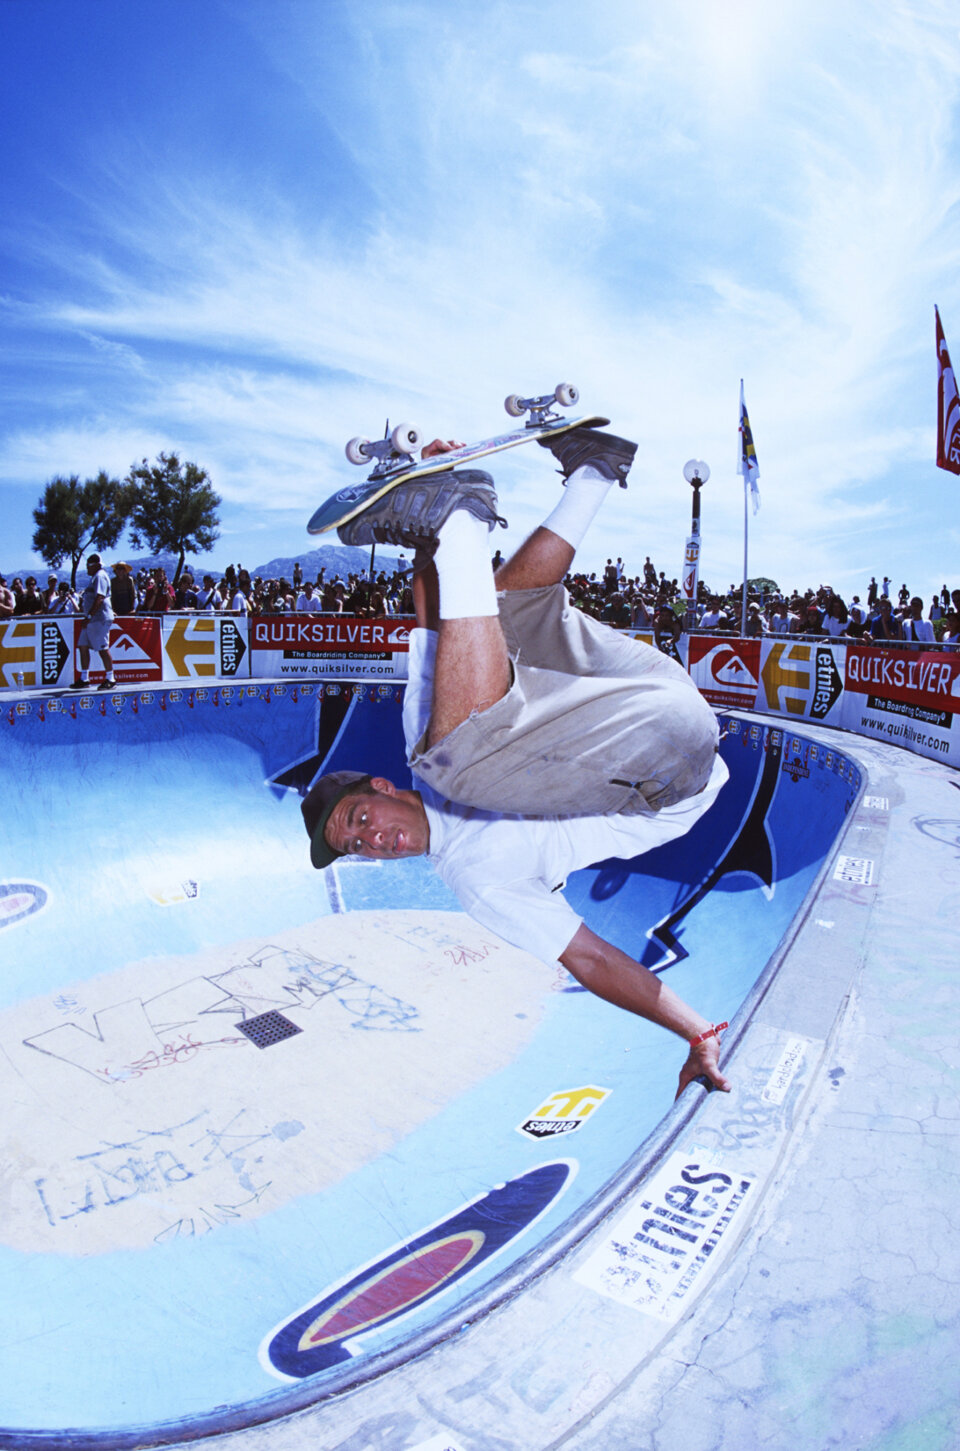 John Cardiel whips out a frontside invert in Marseille's deep end (circa June 2000).  Photo: Bryce Kanights</span>